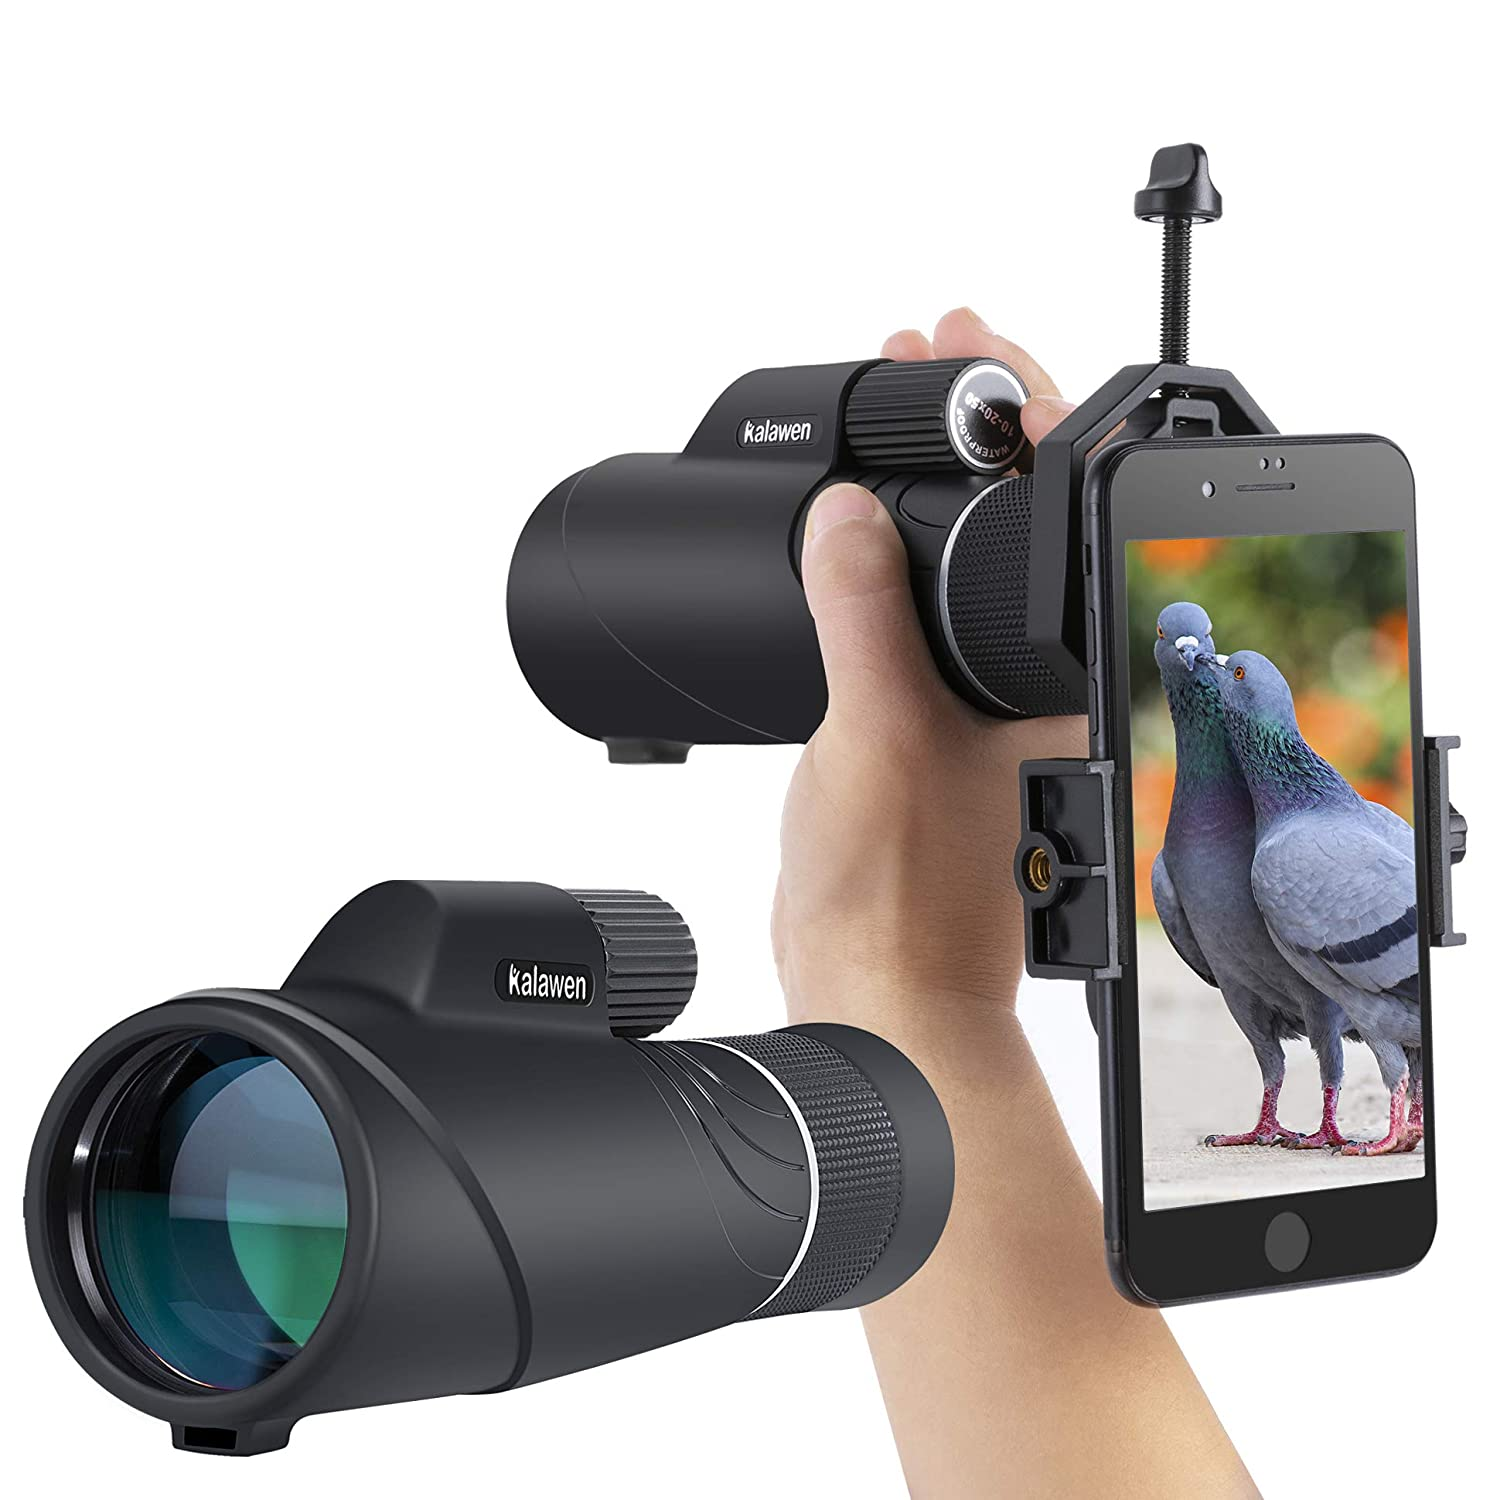 2019 Upgraded 10-20×50 Kalawen Zoom Monocular Telescope Compact with Smartphone Holder and Tripod, Waterproof Monocular with BAK4 Prism Scope for Bird Watching Hunting Camping Shooting Range Hiking